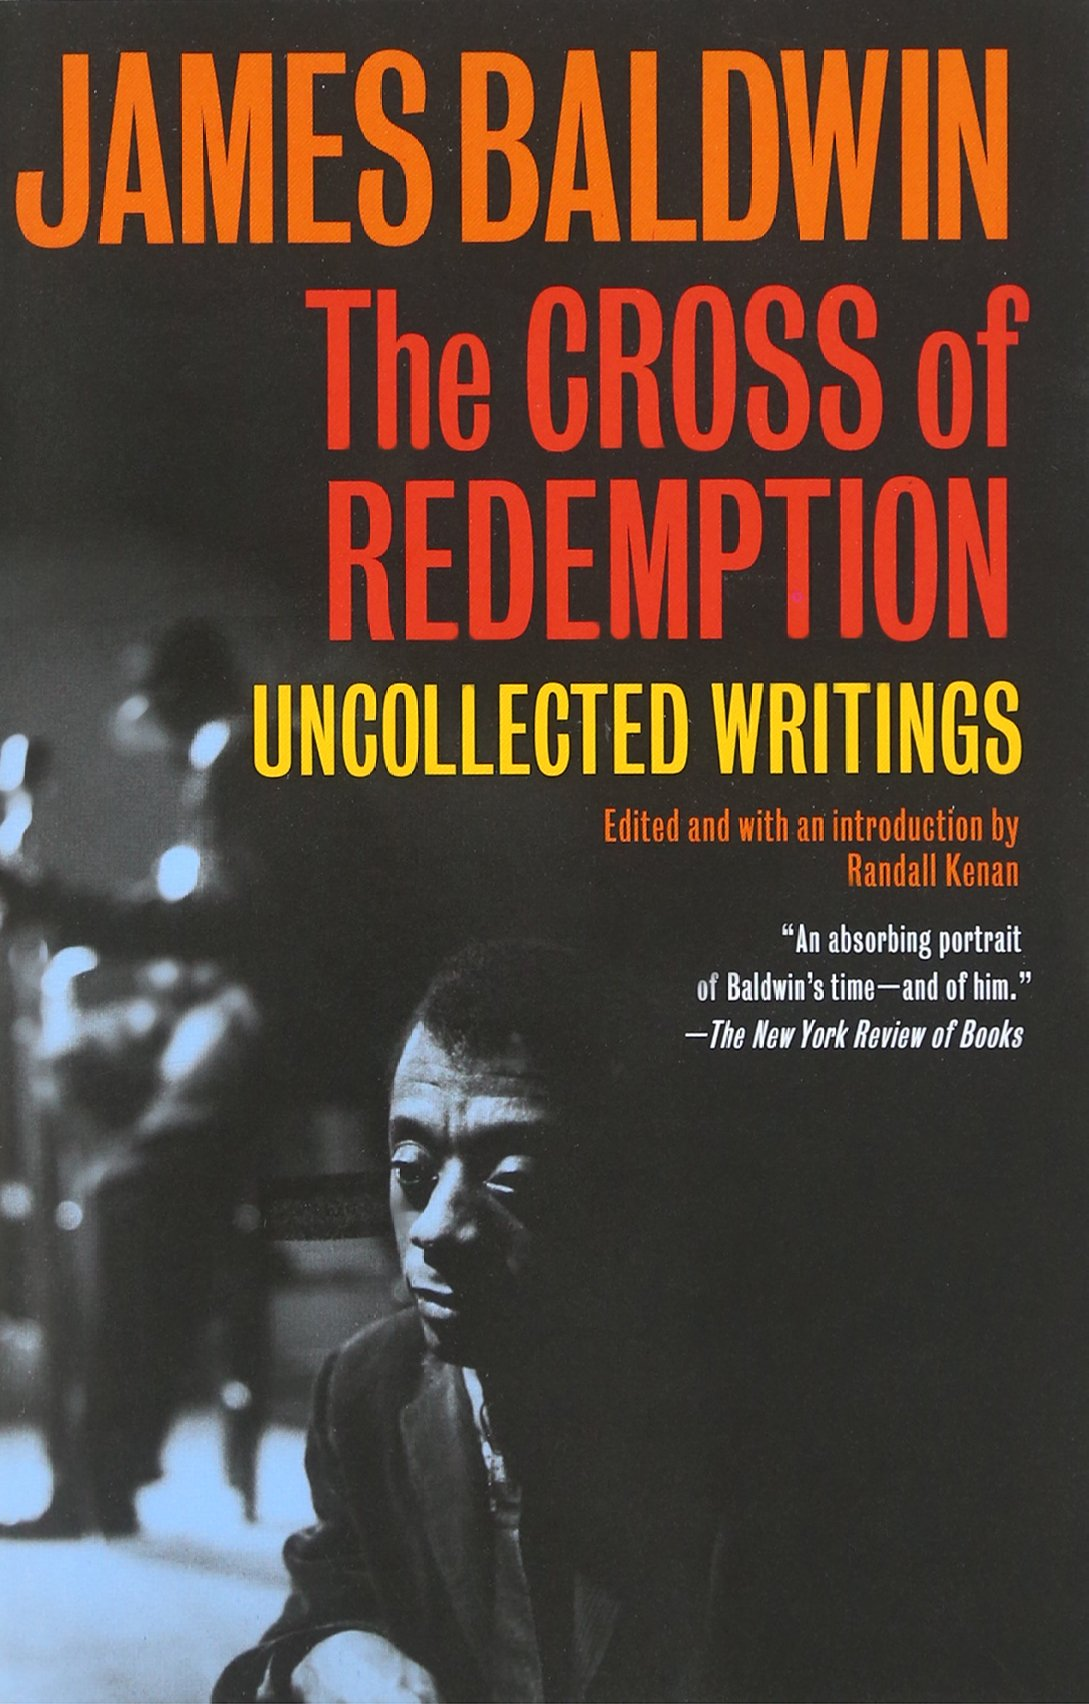 The Cross of Redemption: Uncollected Writings (Vintage International)